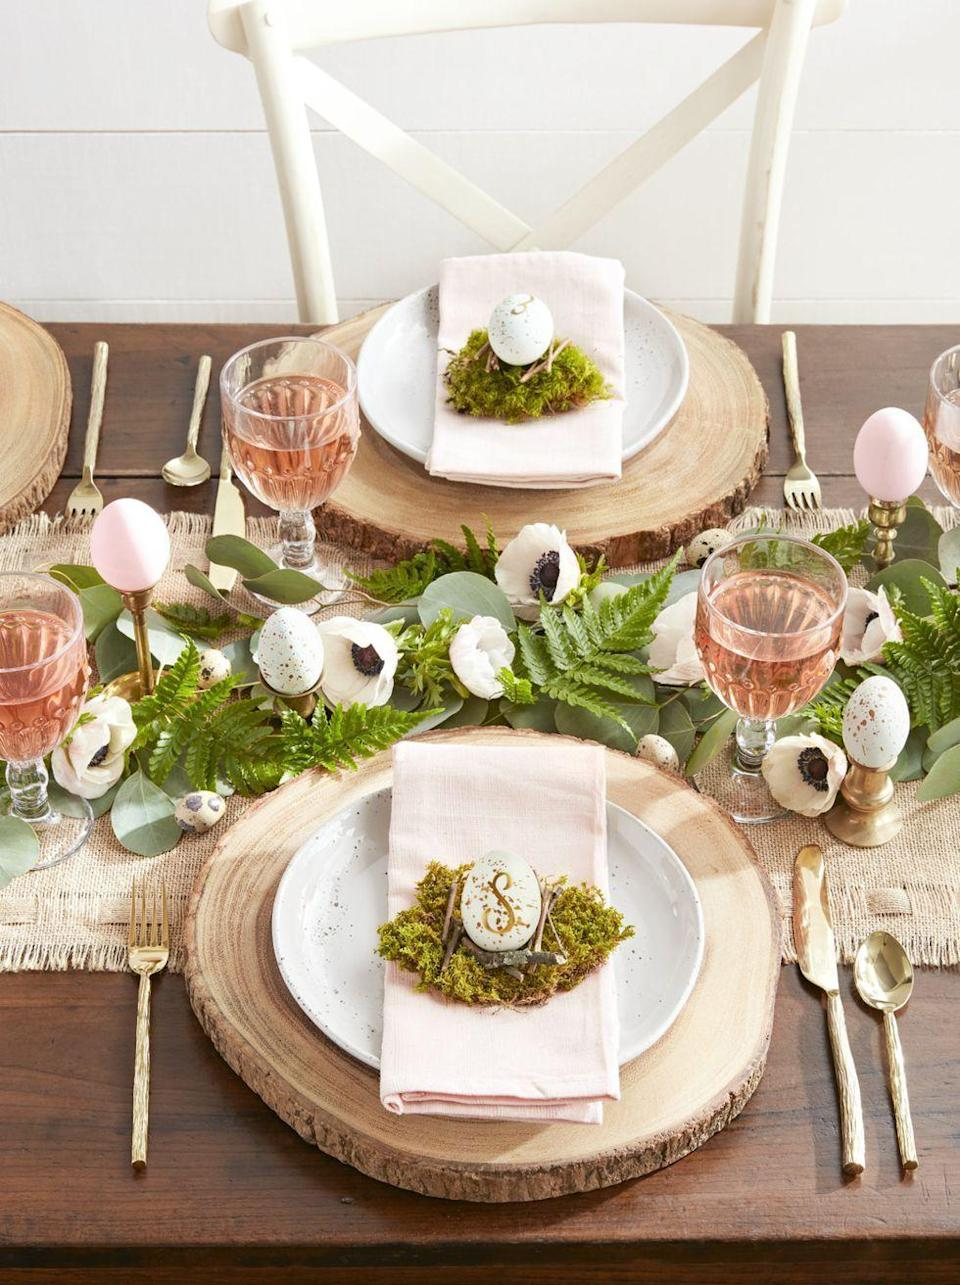 """<p>Save a trip to the store by making your own place cards for the big Easter feast this year.</p><p><strong><em>Get the tutorial at <a href=""""https://www.countryliving.com/diy-crafts/how-to/g524/easter-fun-stuff-0406/?slide=11"""" rel=""""nofollow noopener"""" target=""""_blank"""" data-ylk=""""slk:Country Living"""" class=""""link rapid-noclick-resp"""">Country Living</a>.</em></strong></p><p><strong><a class=""""link rapid-noclick-resp"""" href=""""https://www.amazon.com/DecoArt-Americana-Acrylic-2-Ounce-Lavender/dp/B000XZVON4/ref=dp_prsubs_1?pd_rd_i=B000XZVON4&psc=1&tag=syn-yahoo-20&ascsubtag=%5Bartid%7C10070.g.1751%5Bsrc%7Cyahoo-us"""" rel=""""nofollow noopener"""" target=""""_blank"""" data-ylk=""""slk:SHOP PAINT"""">SHOP PAINT</a></strong></p>"""